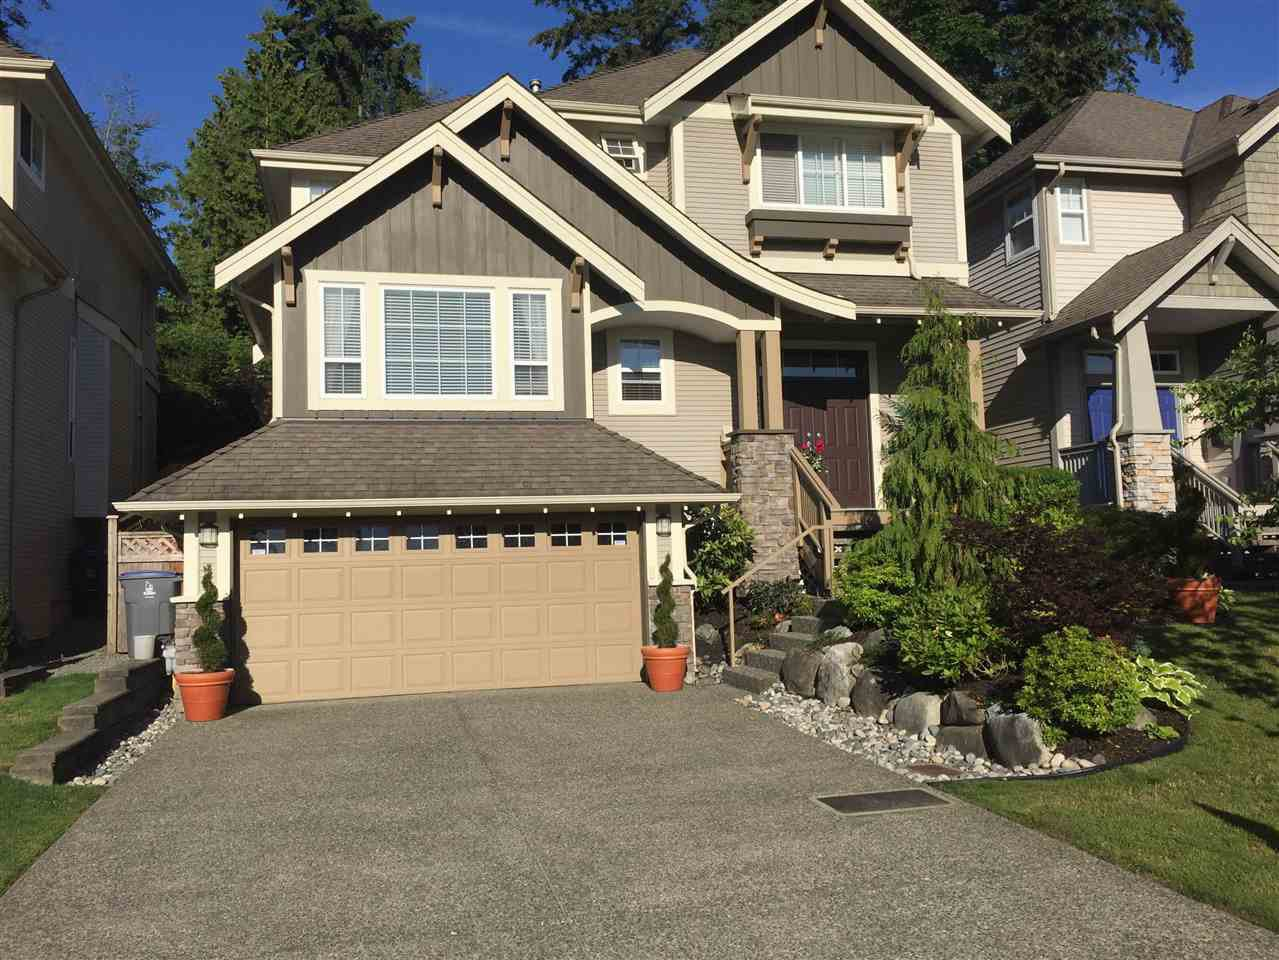 Main Photo: 3377 145A Street in Surrey: Elgin Chantrell House for sale (South Surrey White Rock)  : MLS®# R2078061